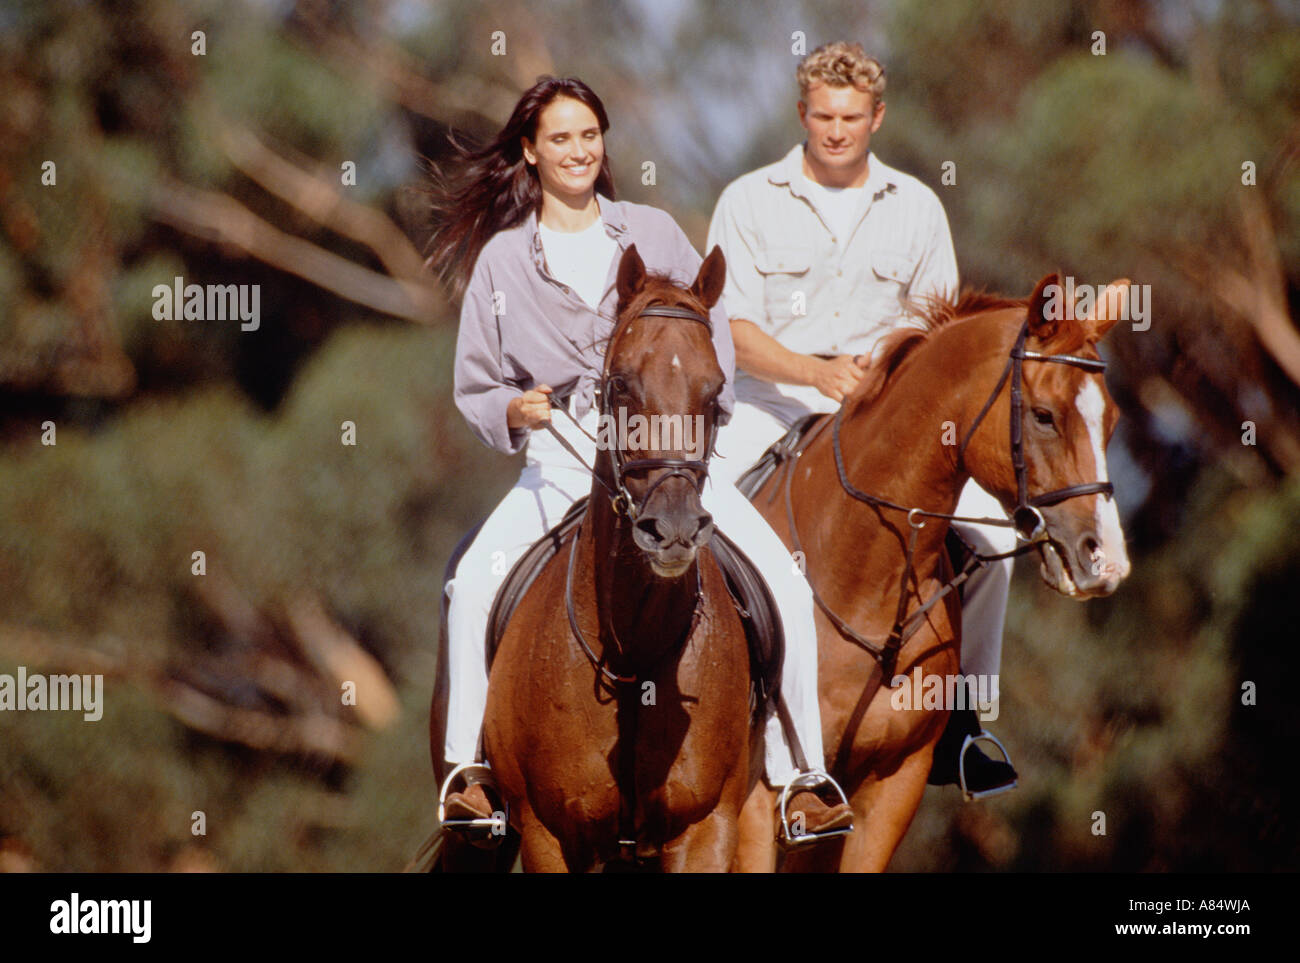 Young Couple Horse Riding Outdoor Lifestyle Stock Photo Alamy